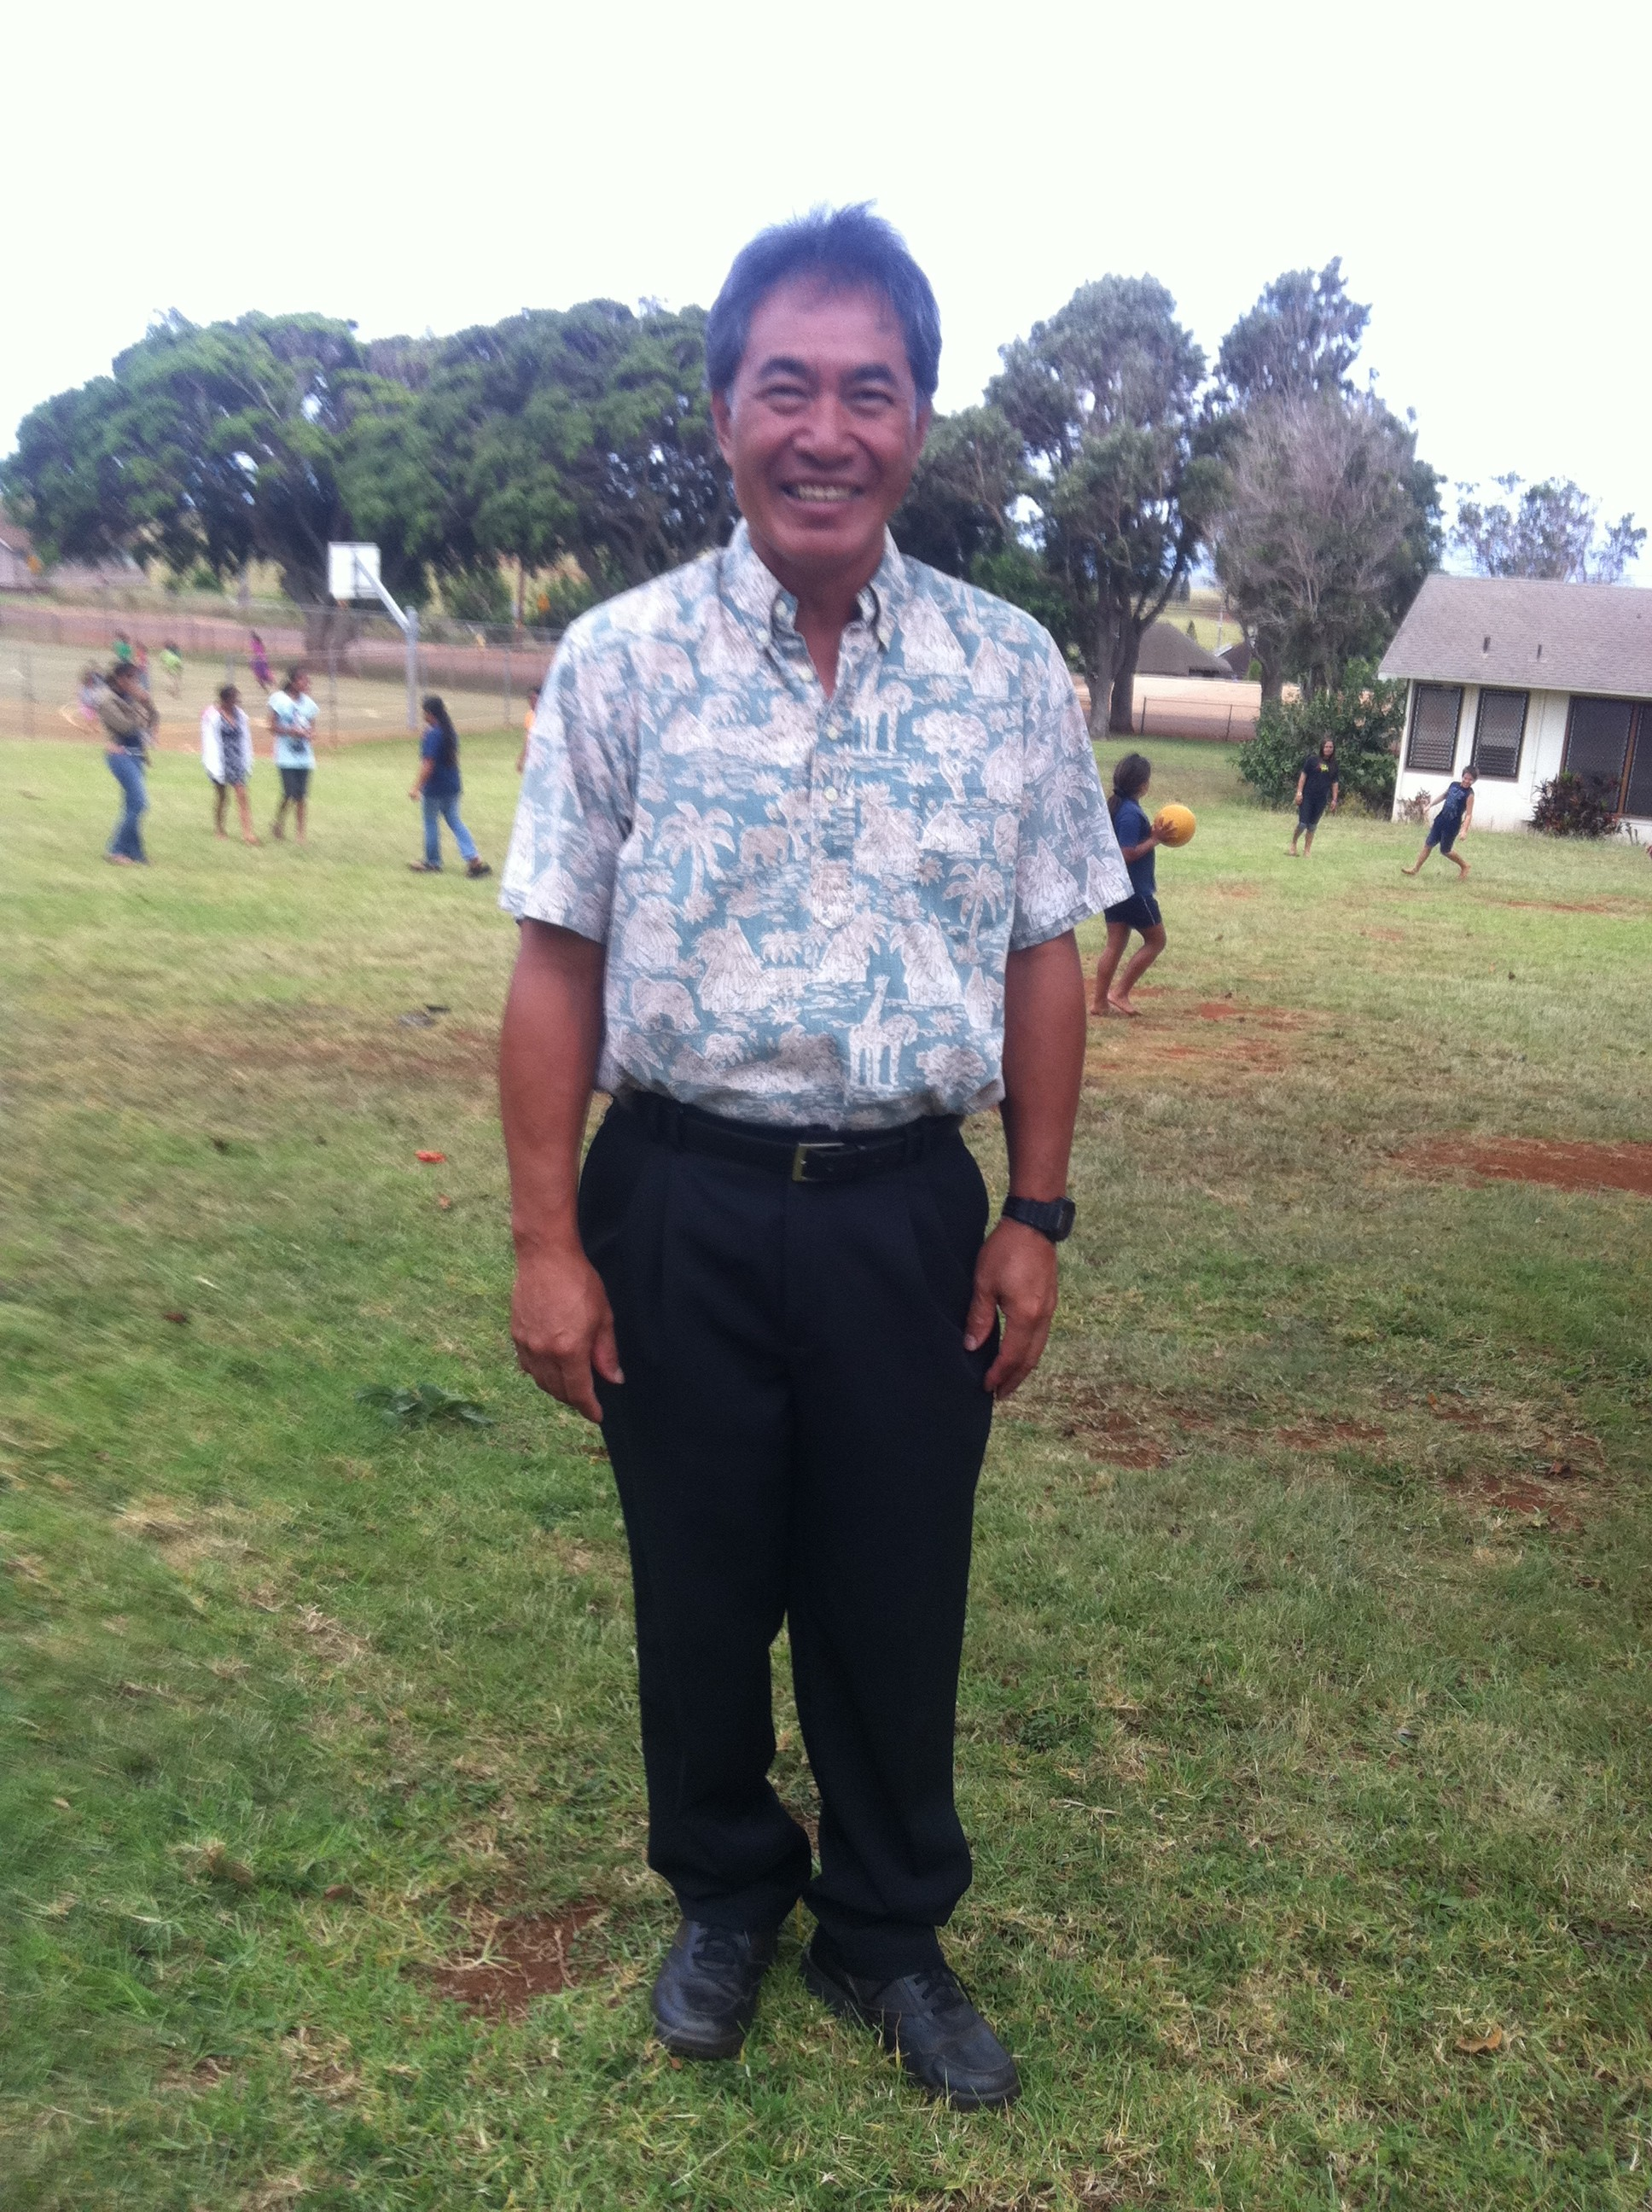 Maunaloa principal selected as award finalist